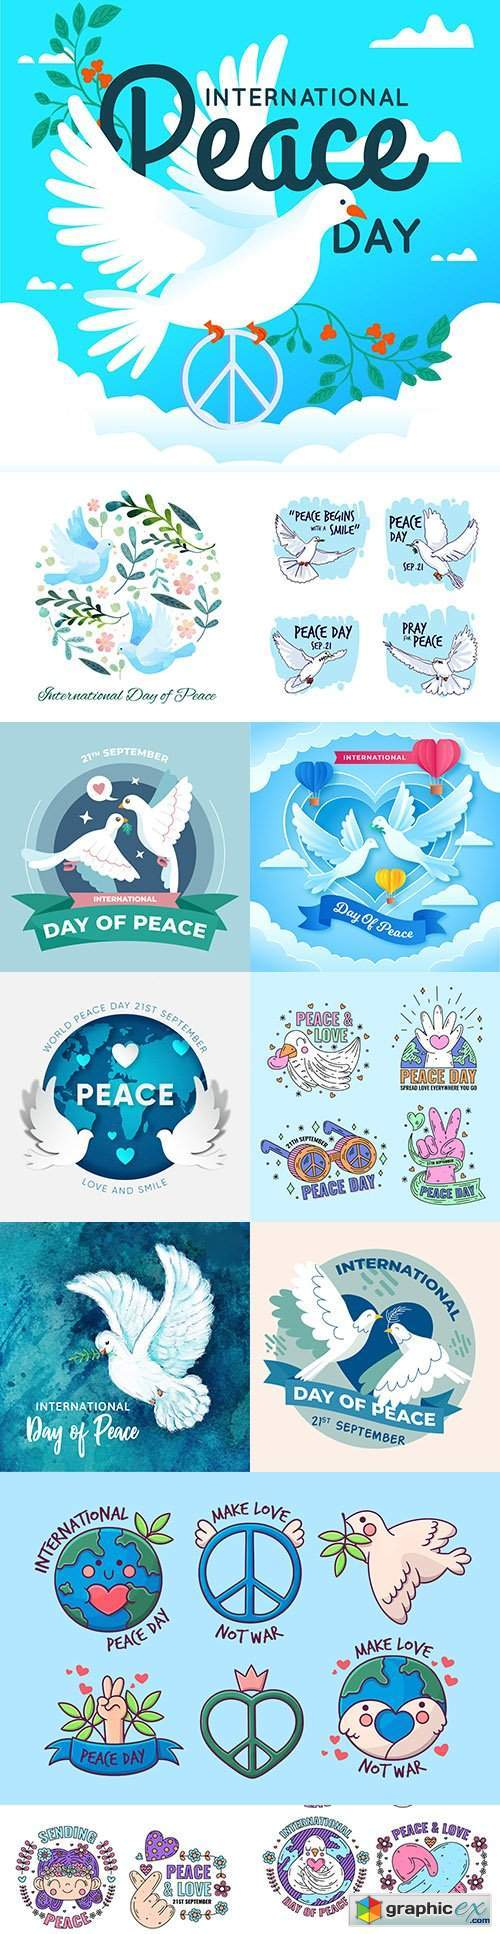 International Day of Peace with Pigeons and Hearts